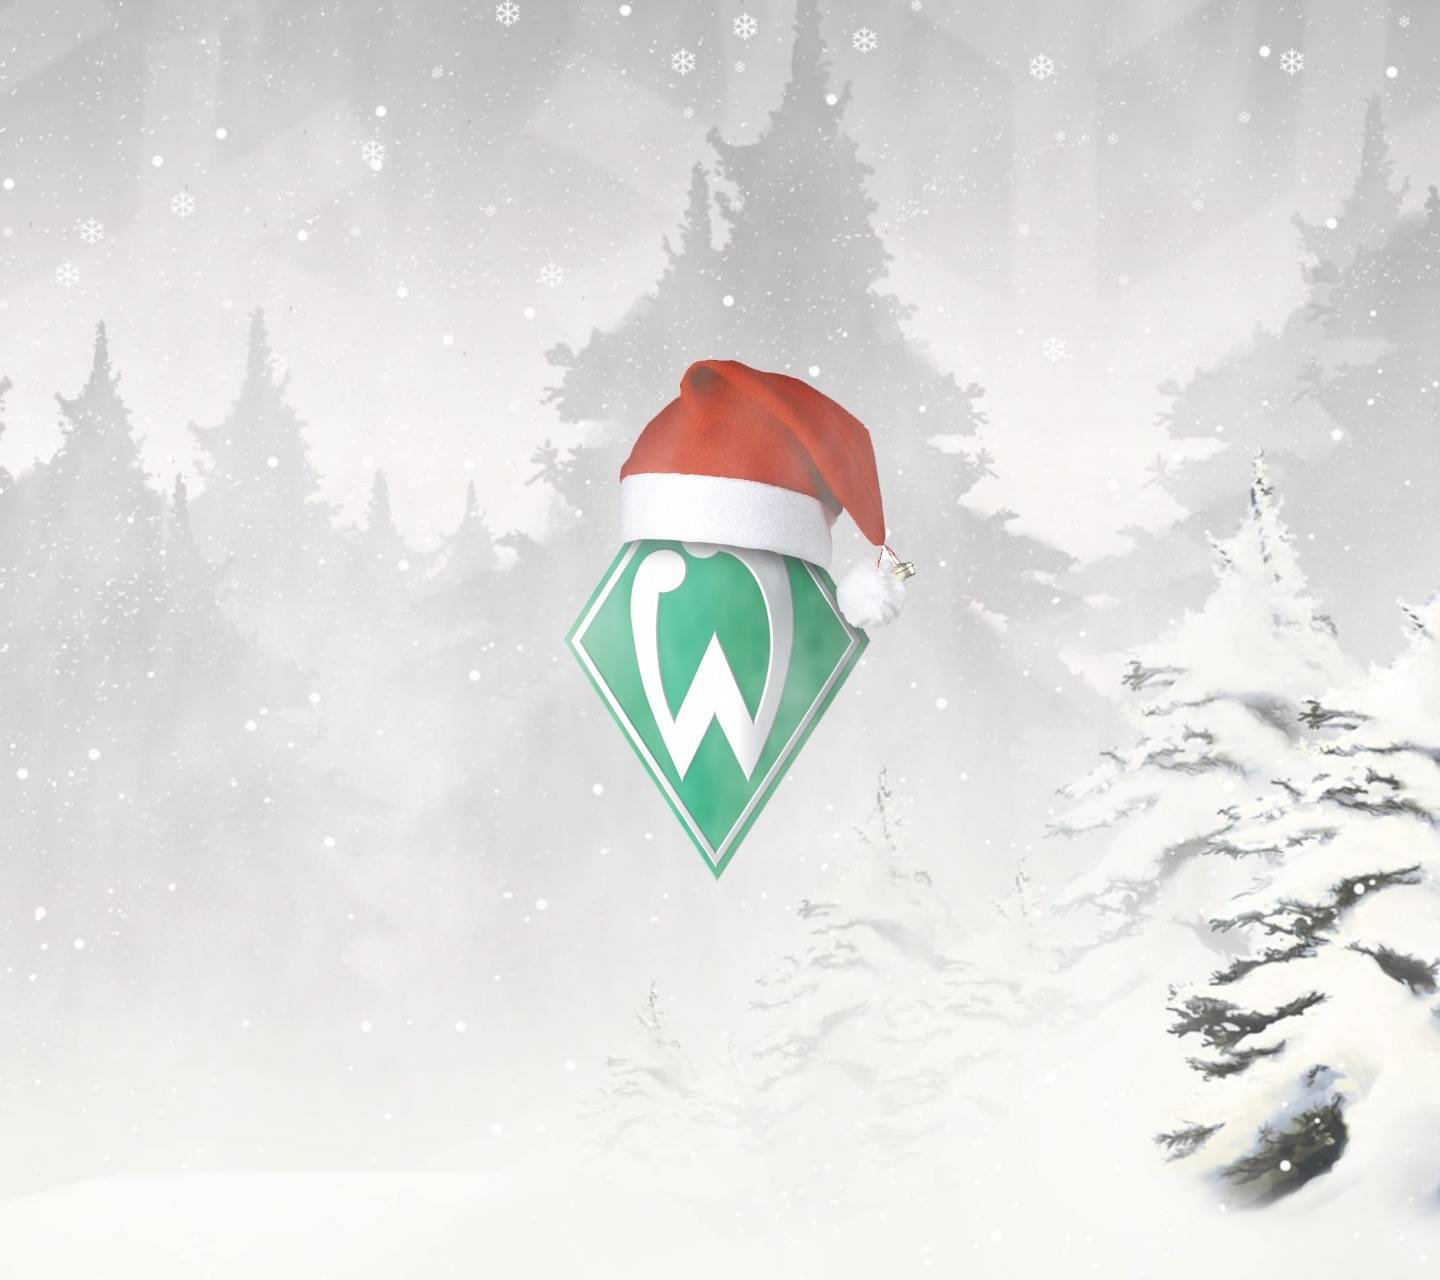 Werder and Christmas